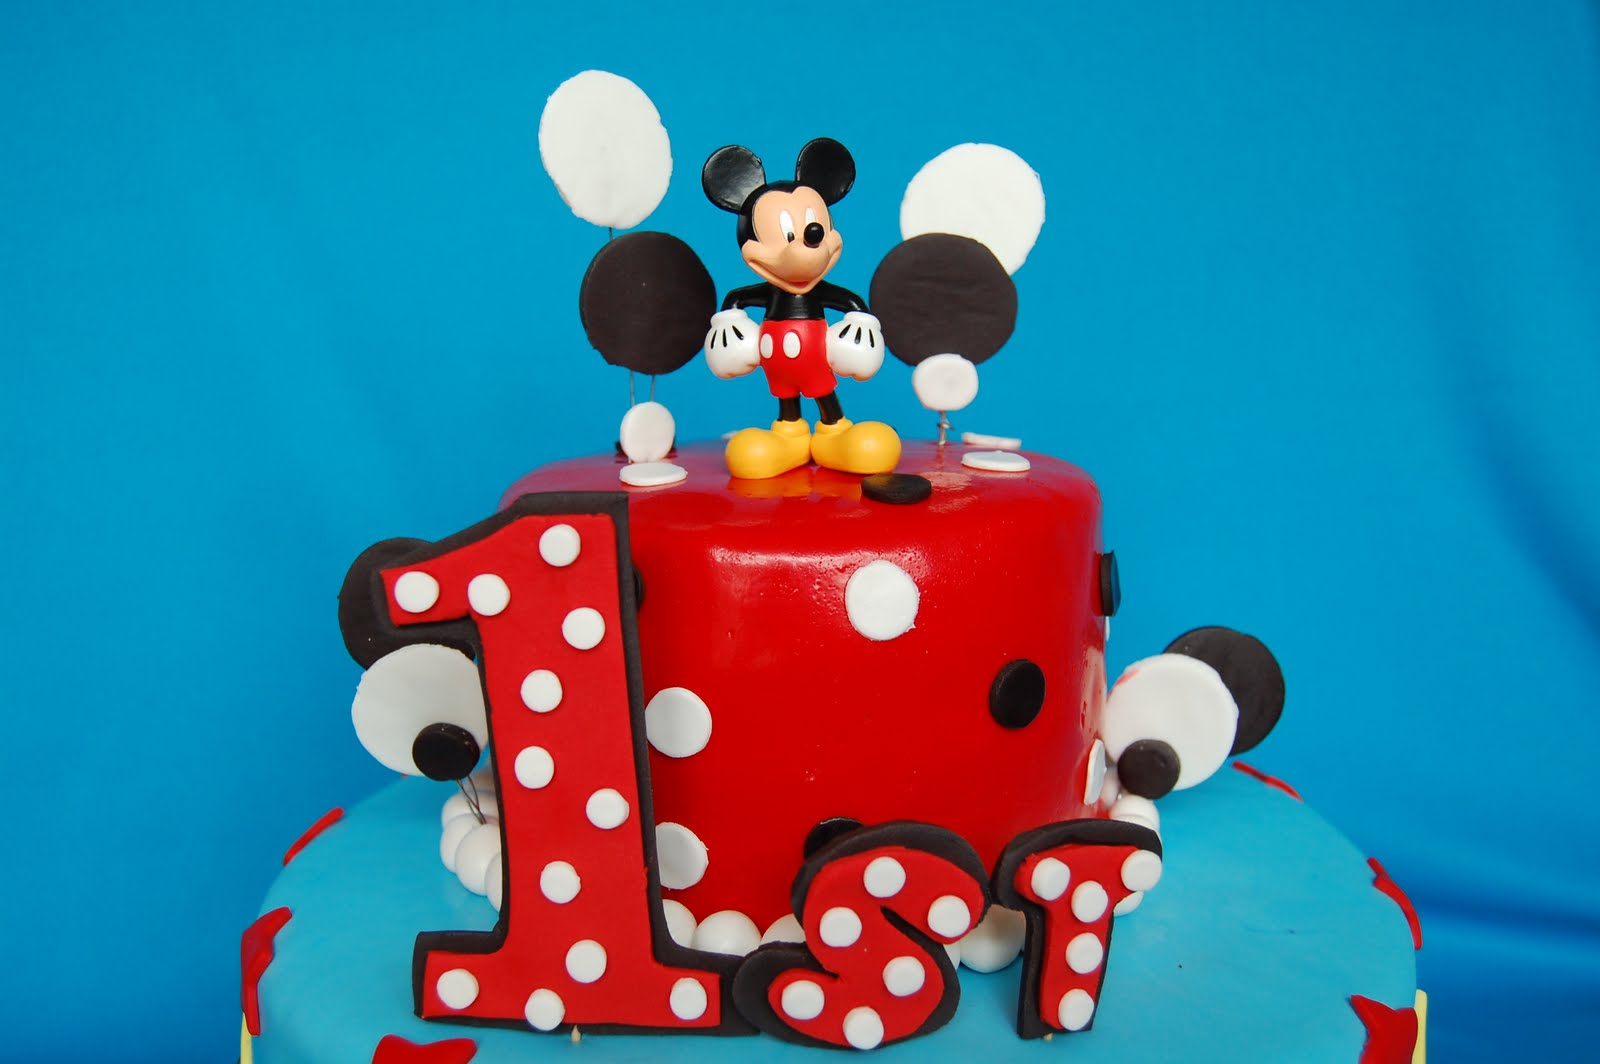 Magnificent Mickey Mouse Cakes Picture Mickey Mouse Cakes Wallpaper Funny Birthday Cards Online Benoljebrpdamsfinfo